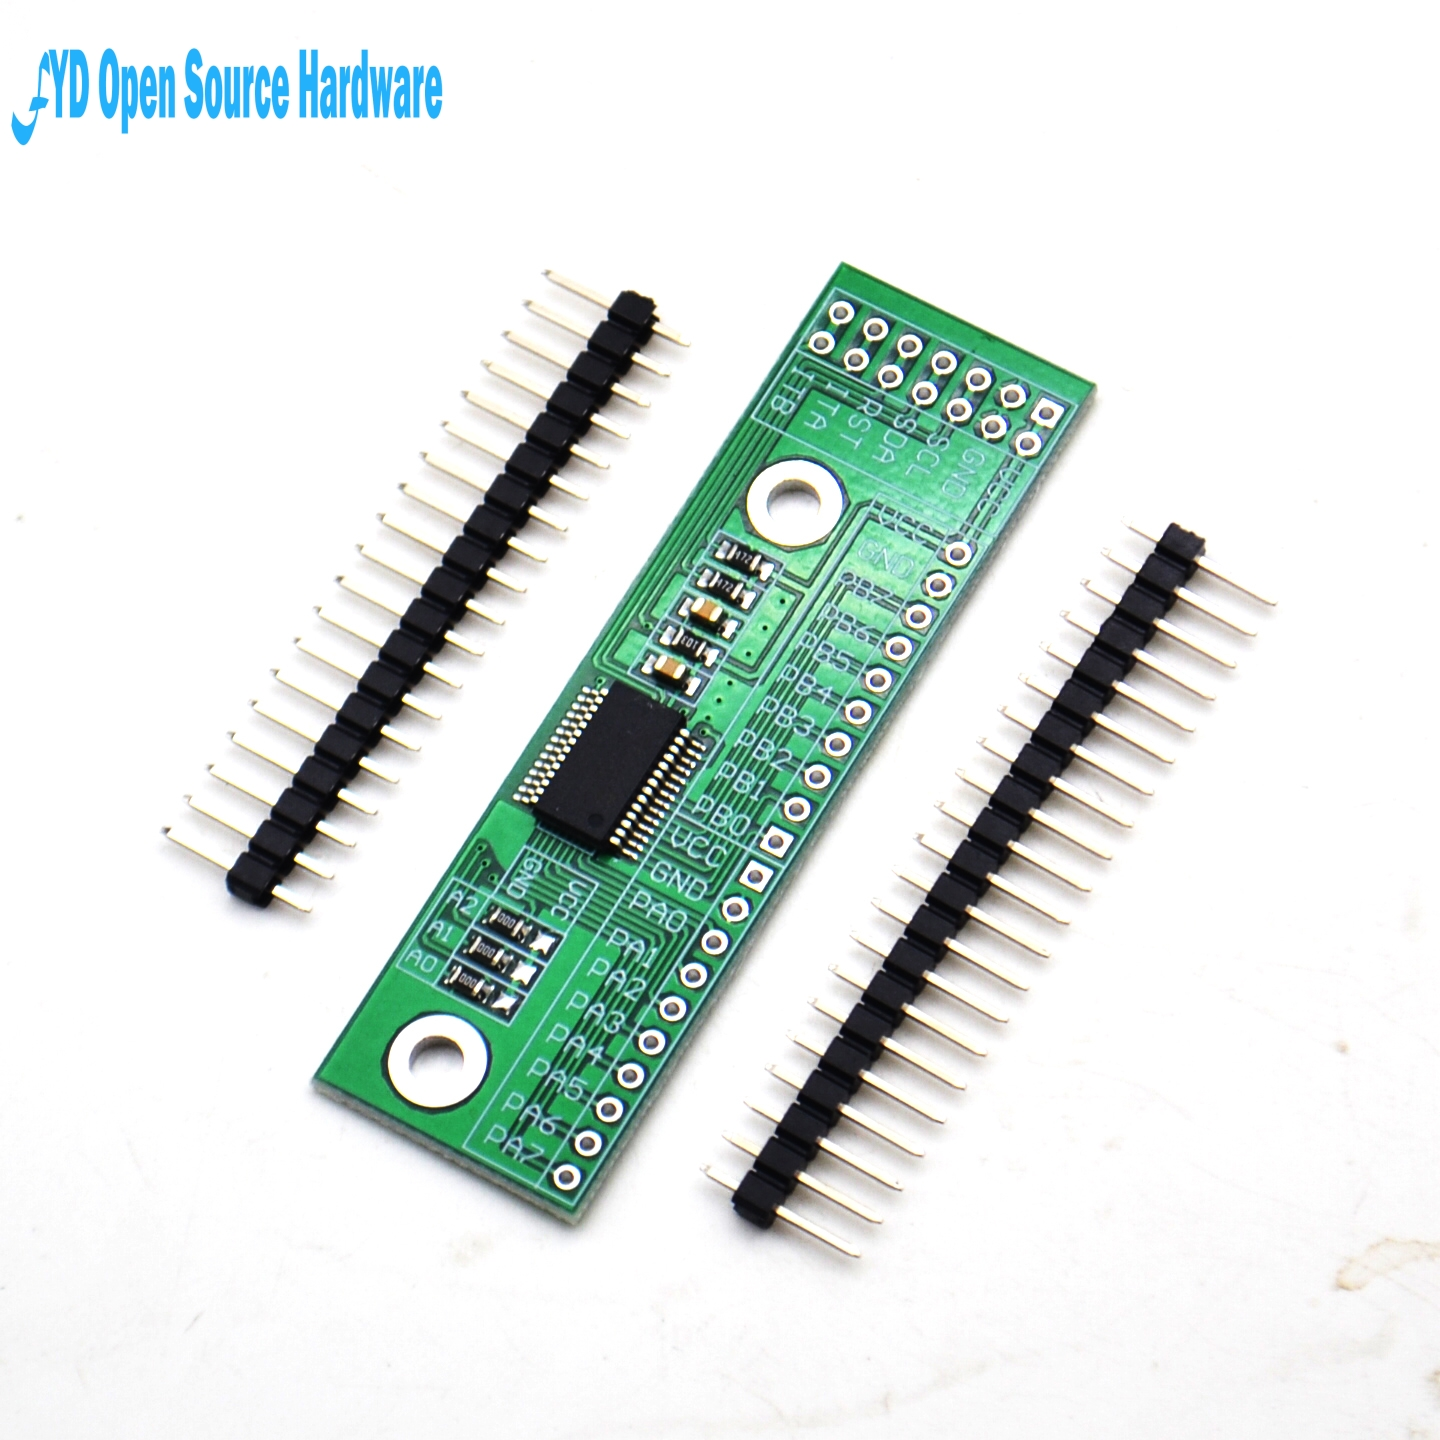 1pcs MCP23017 I2C Interface 16bit I/O Extension Module Pin Board IIC To GIPO Converter 25mA1 Drive Power Supply For Arduino